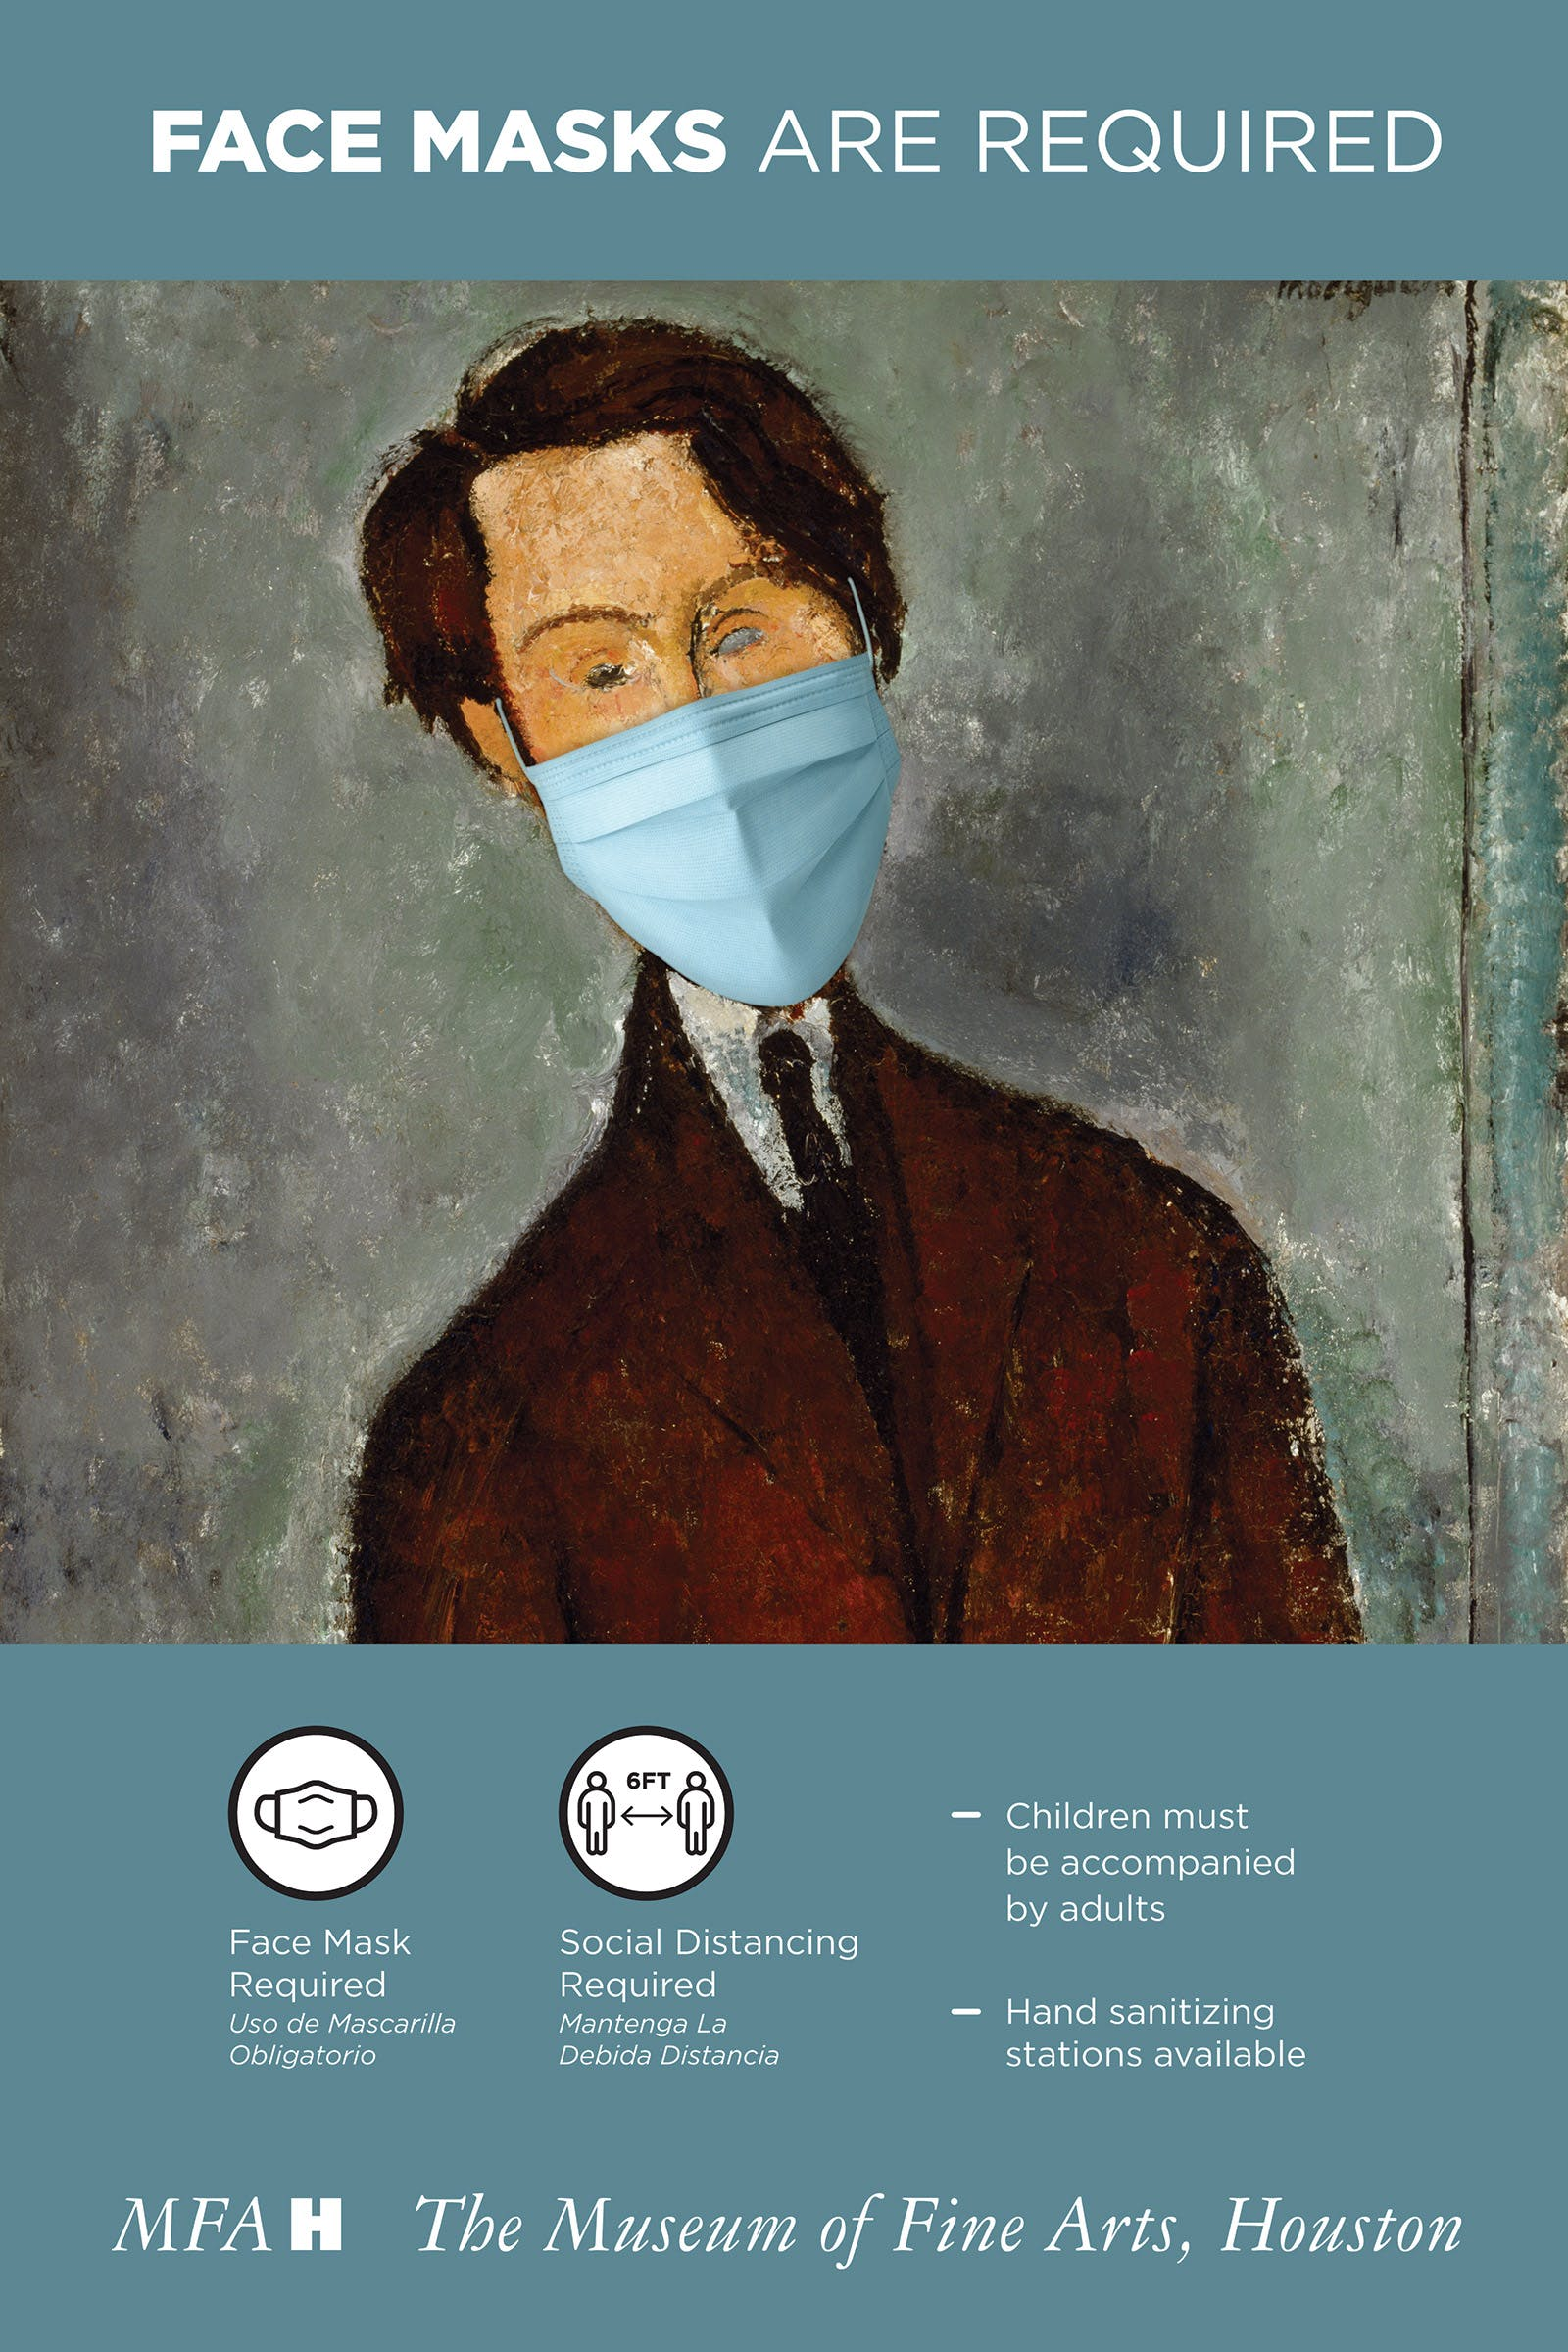 graphic signature, which features Amedeo Modigliani's Léopold Zborowski in a mask.